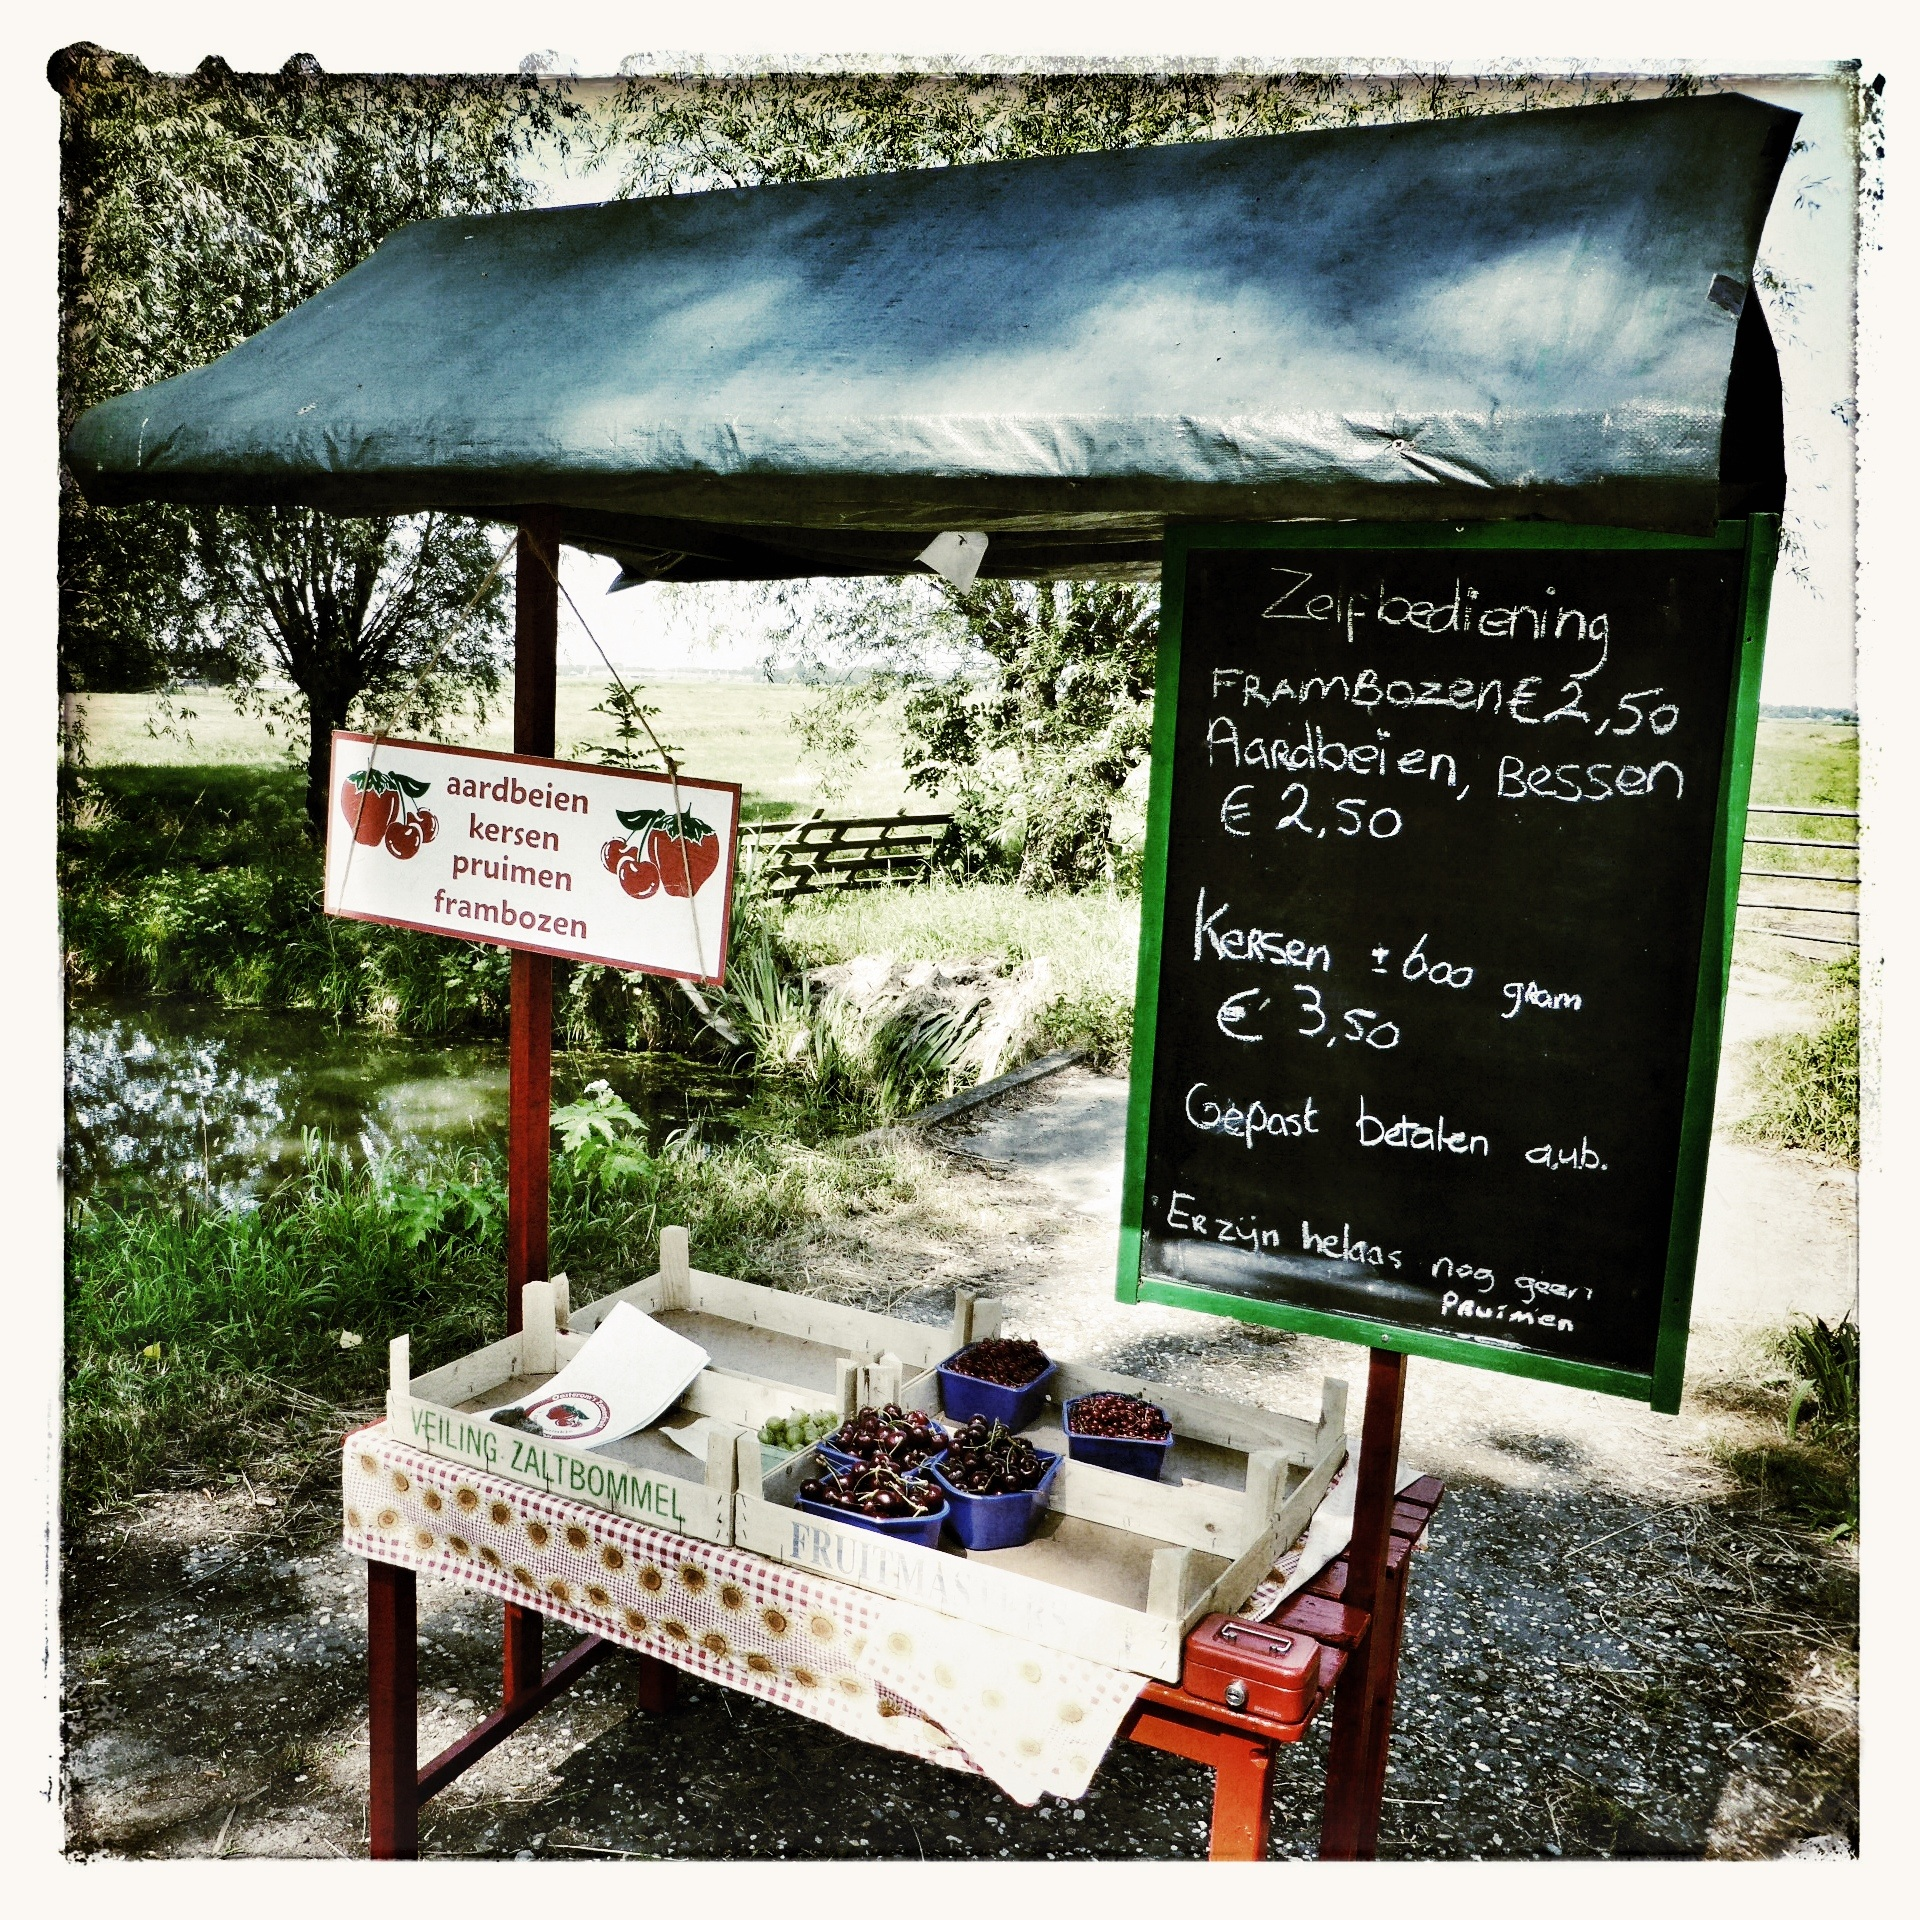 Local fruit stall